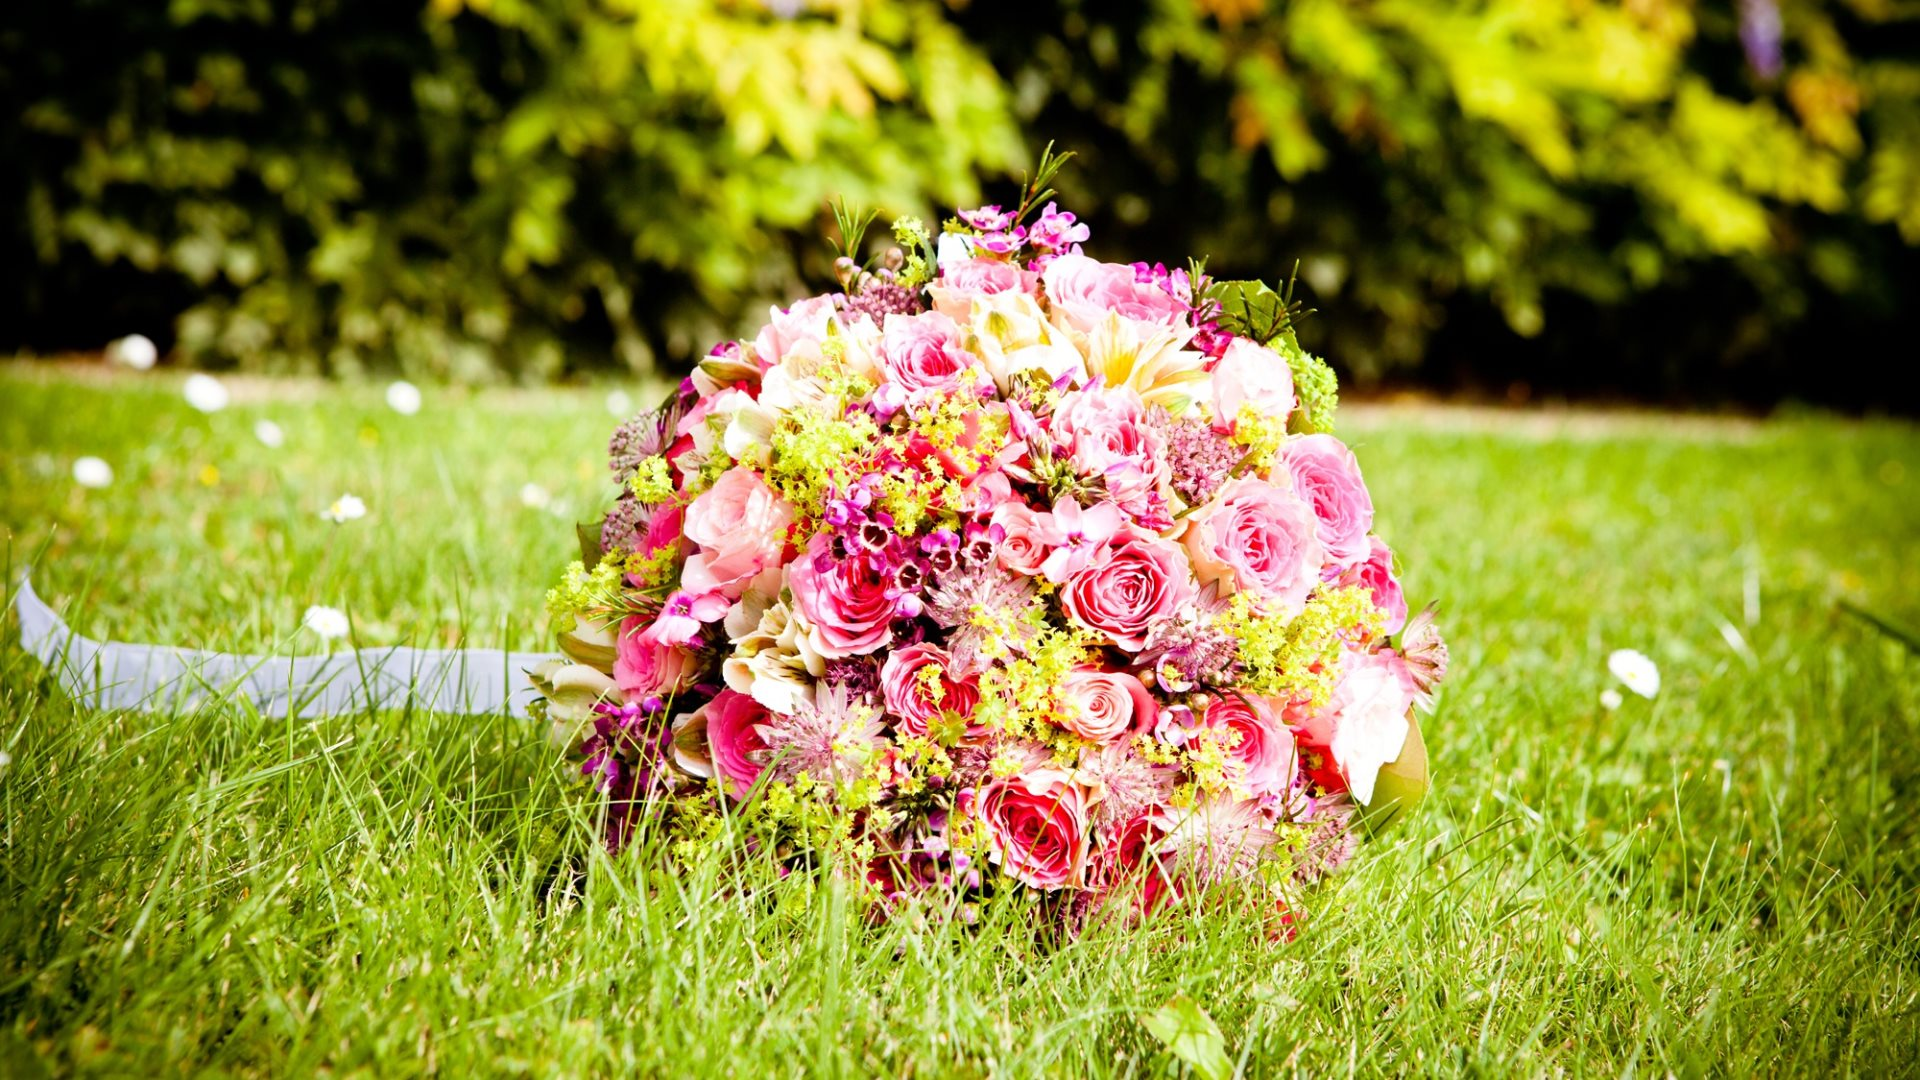 Wedding Bouquet Definition : Romantic moments wallpapers in hd k and wide sizes